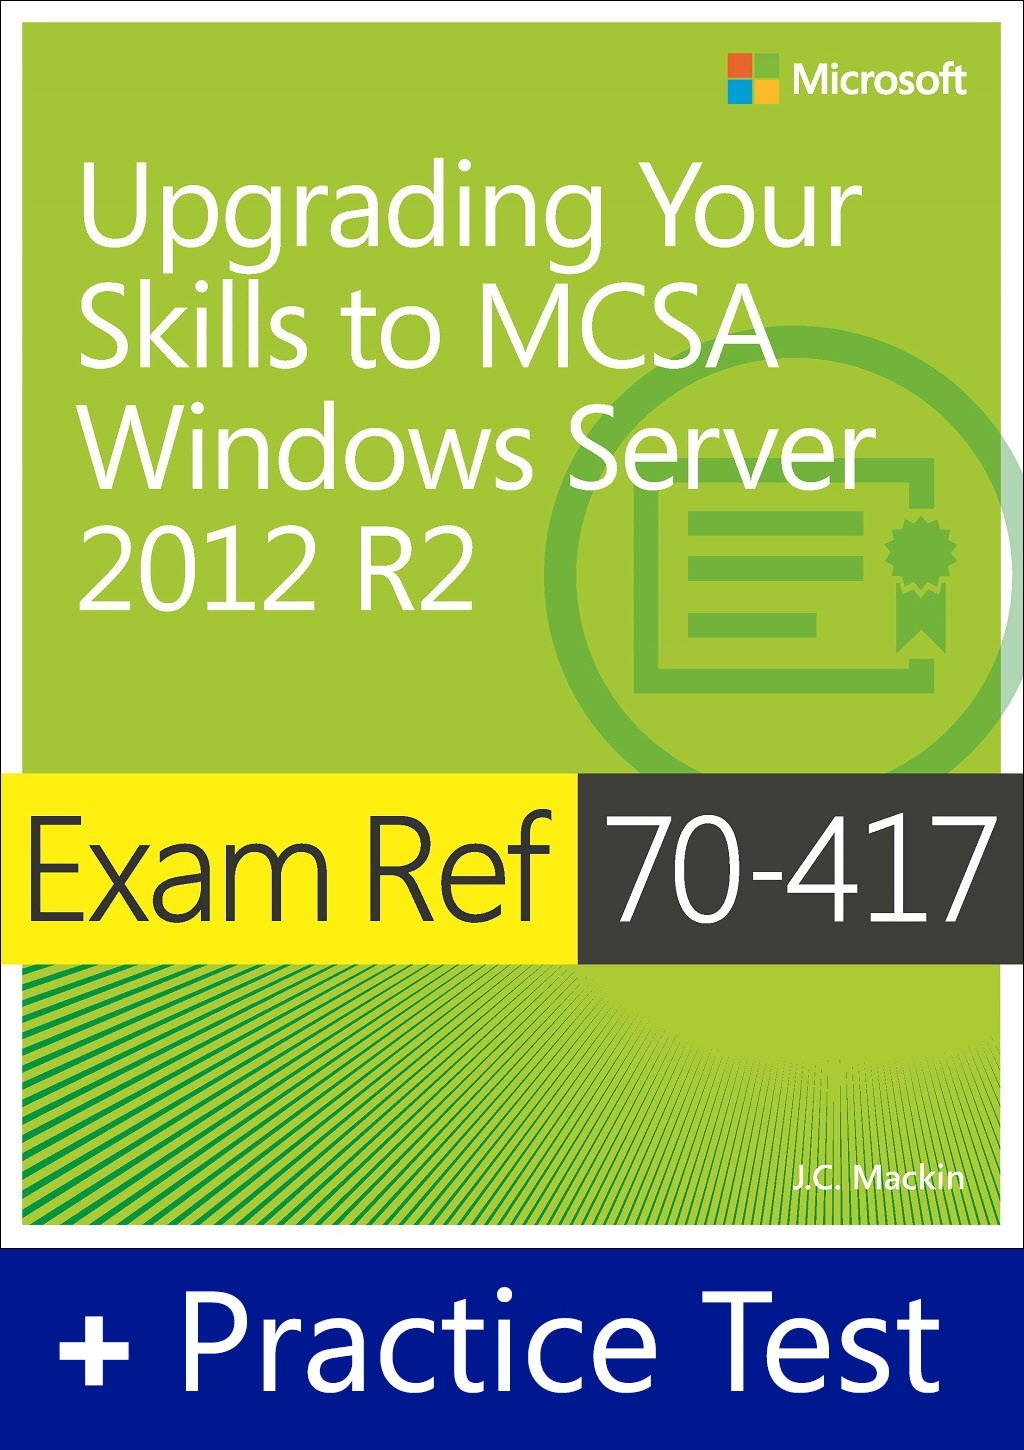 Exam Ref 70-417 Upgrading Your Skills to MCSA Windows Server 2012 R2 with Practice Test